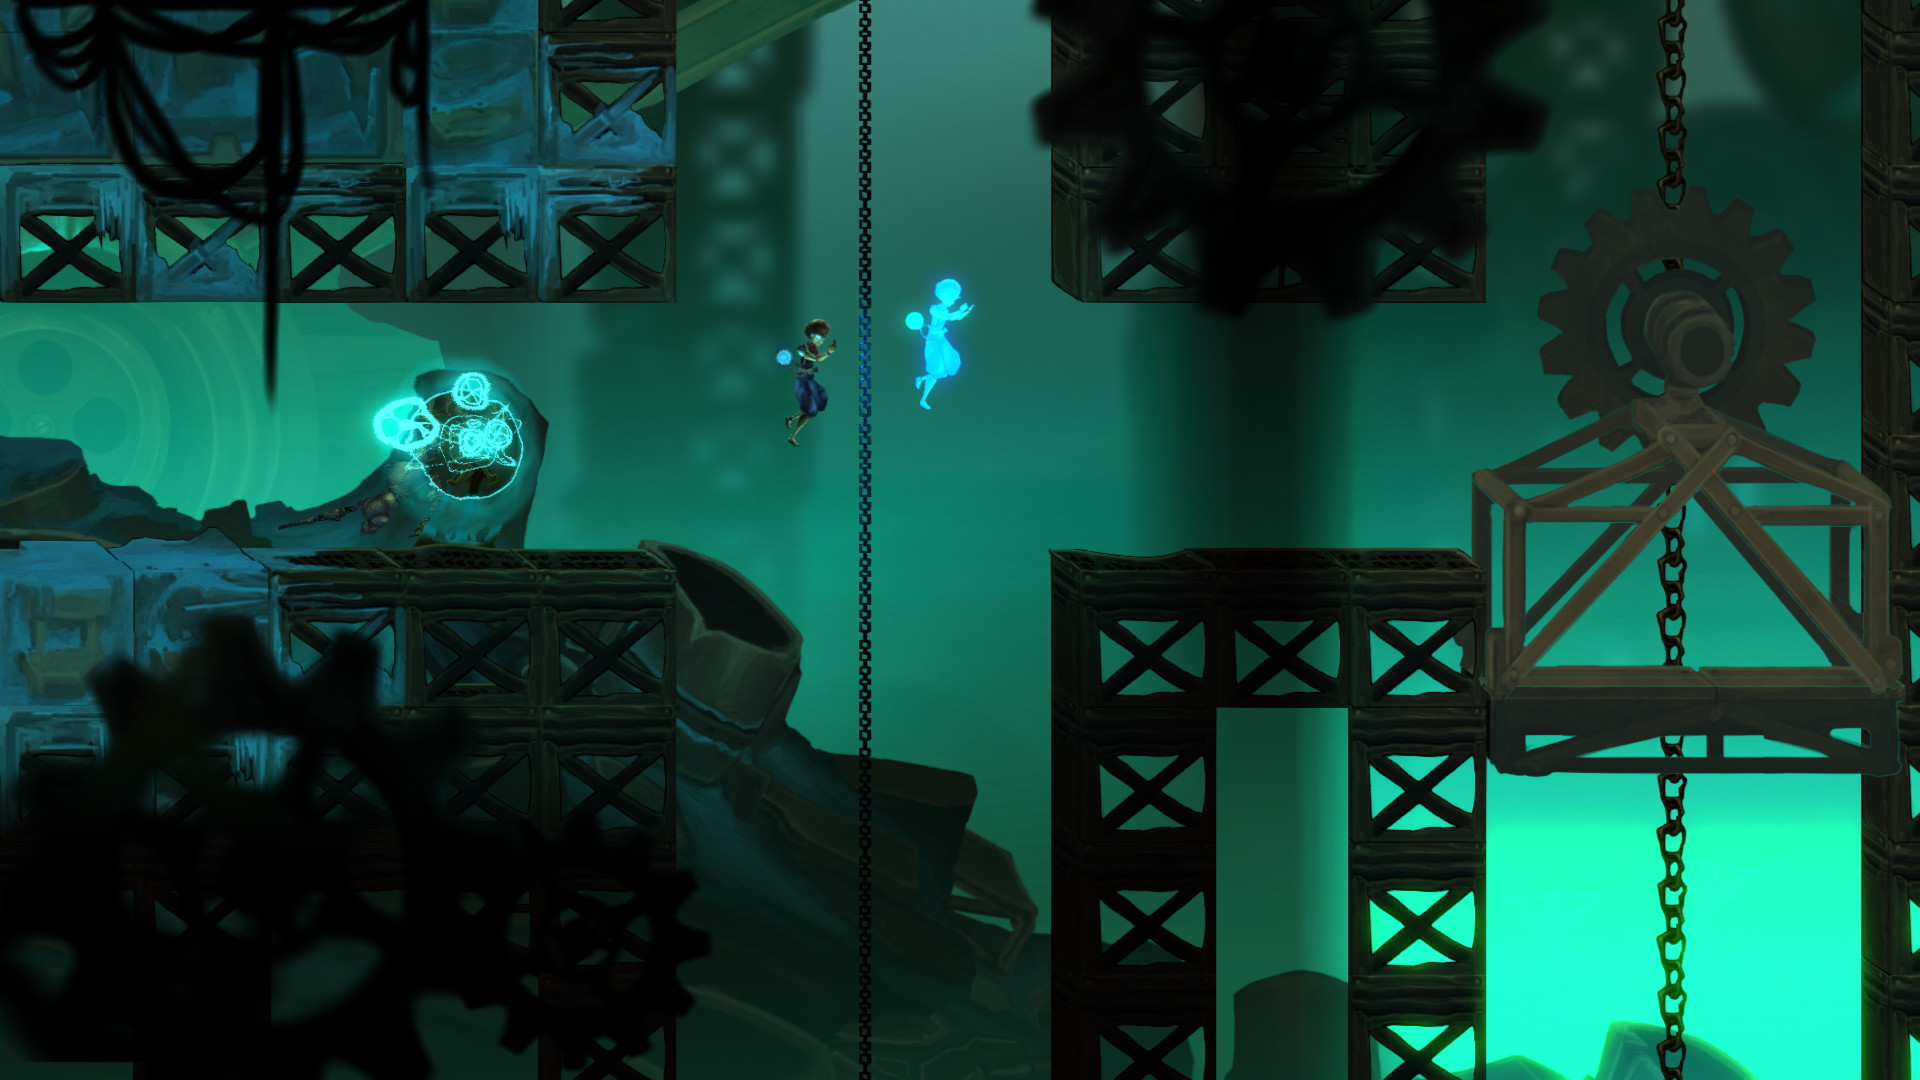 Clockwork Screenshot 1